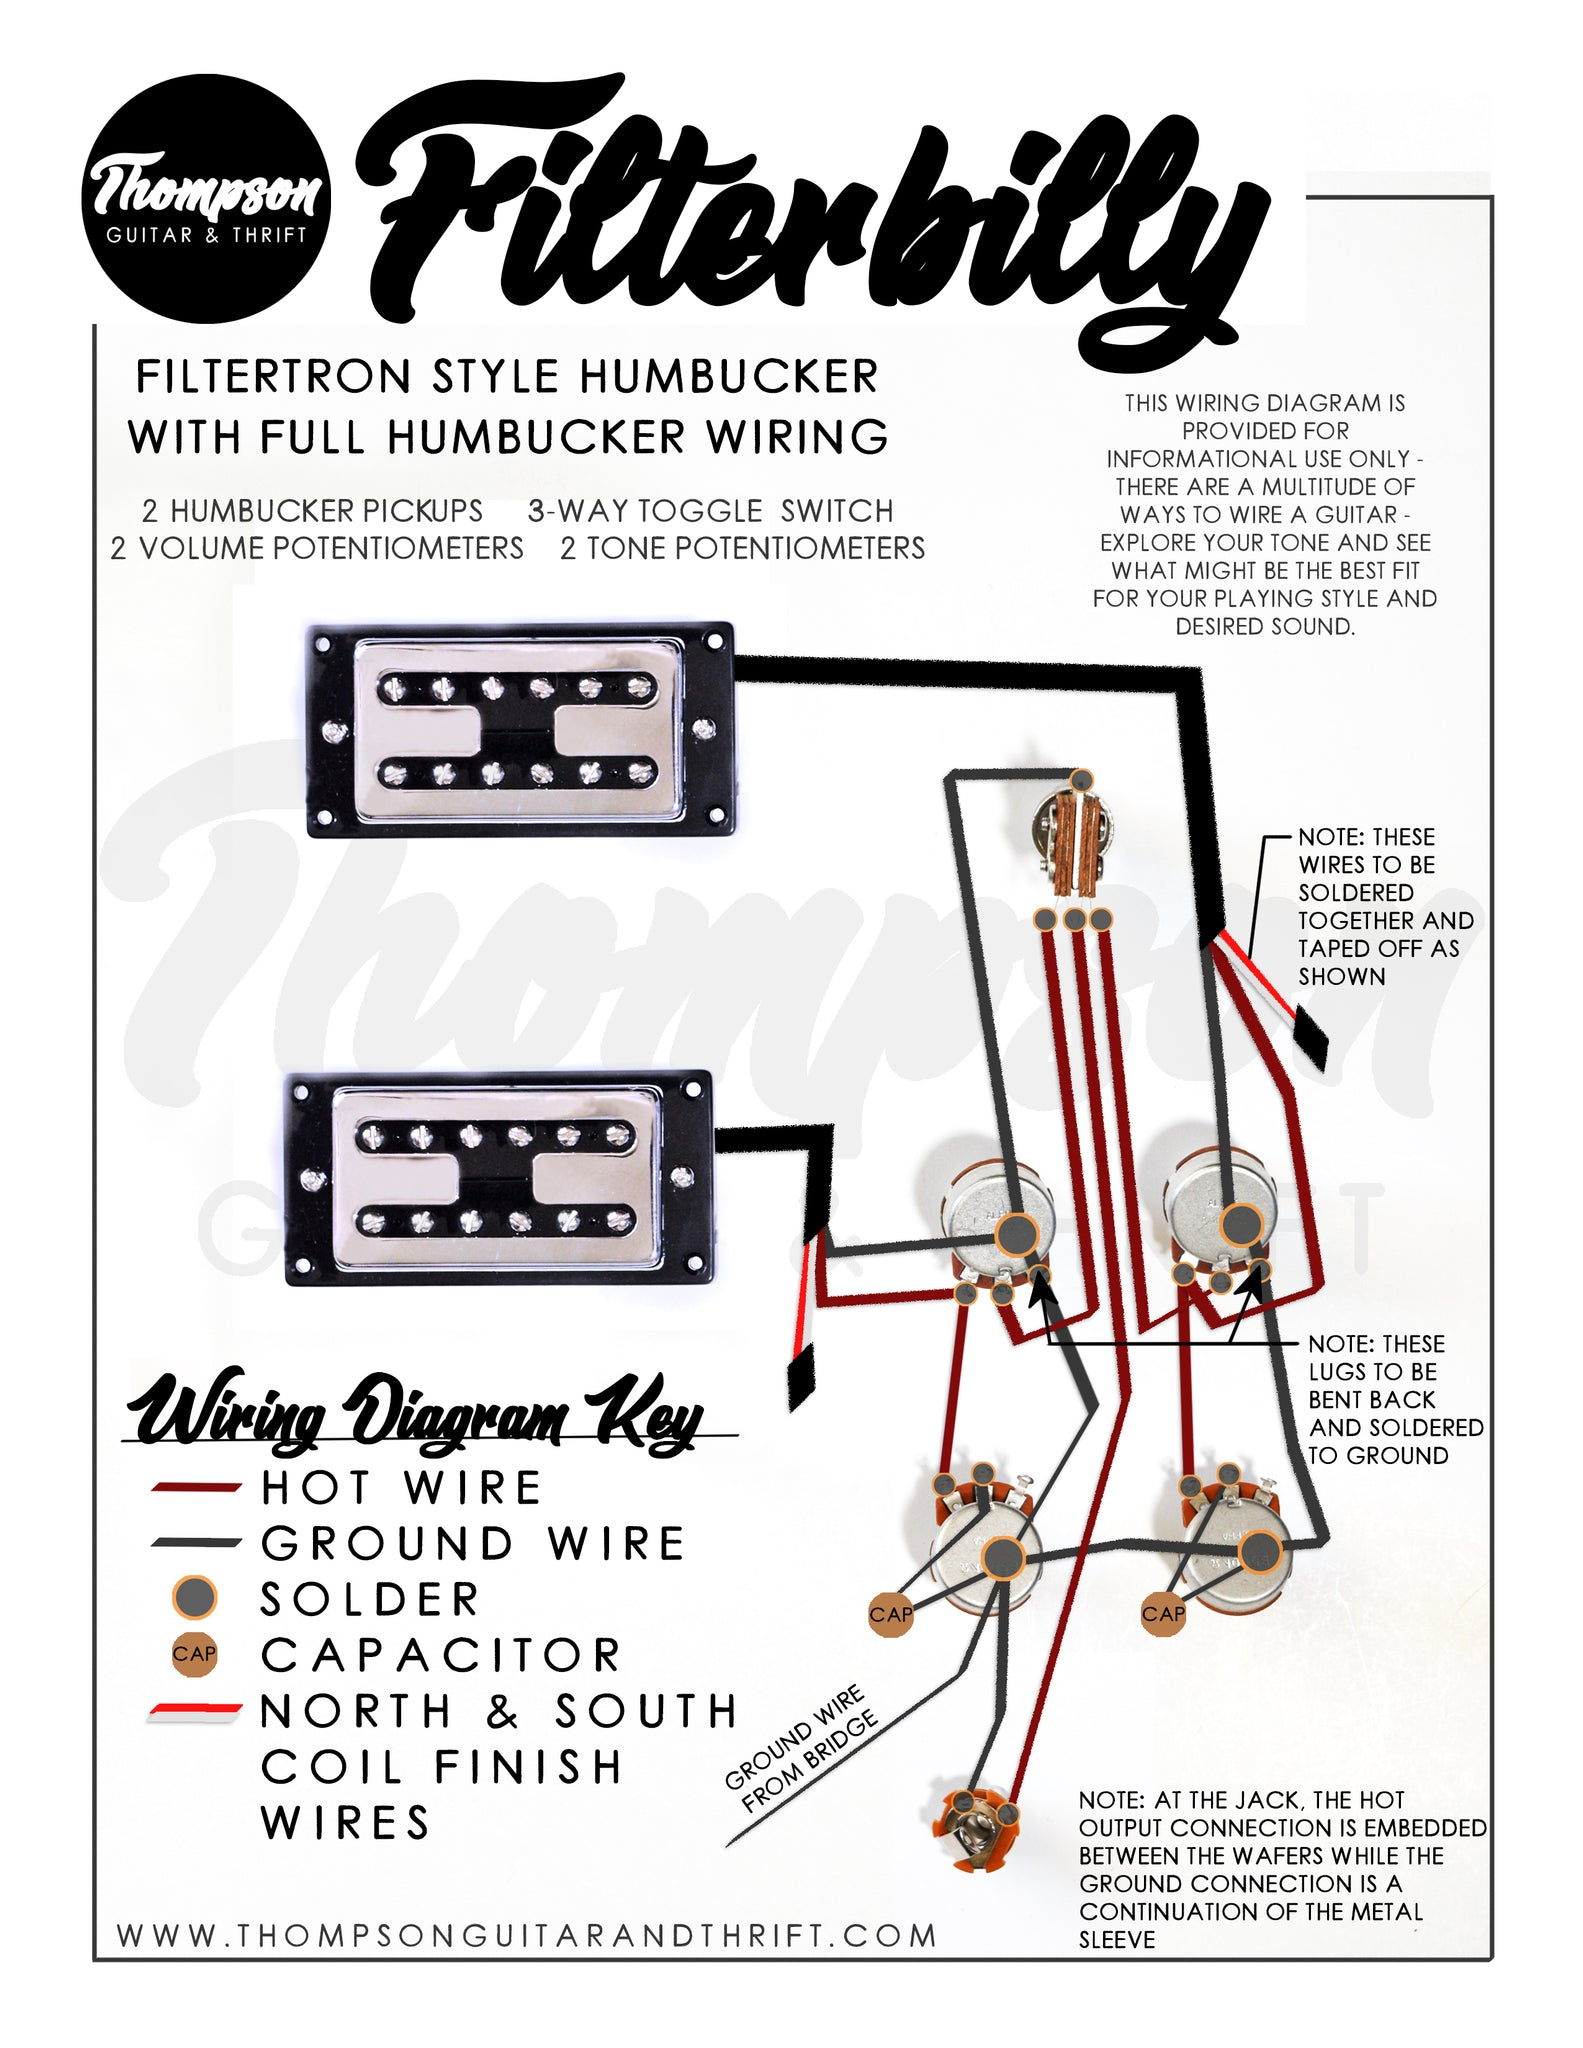 Filterbilly Humbucker Pickup Wiring Diagram | Thompson ...